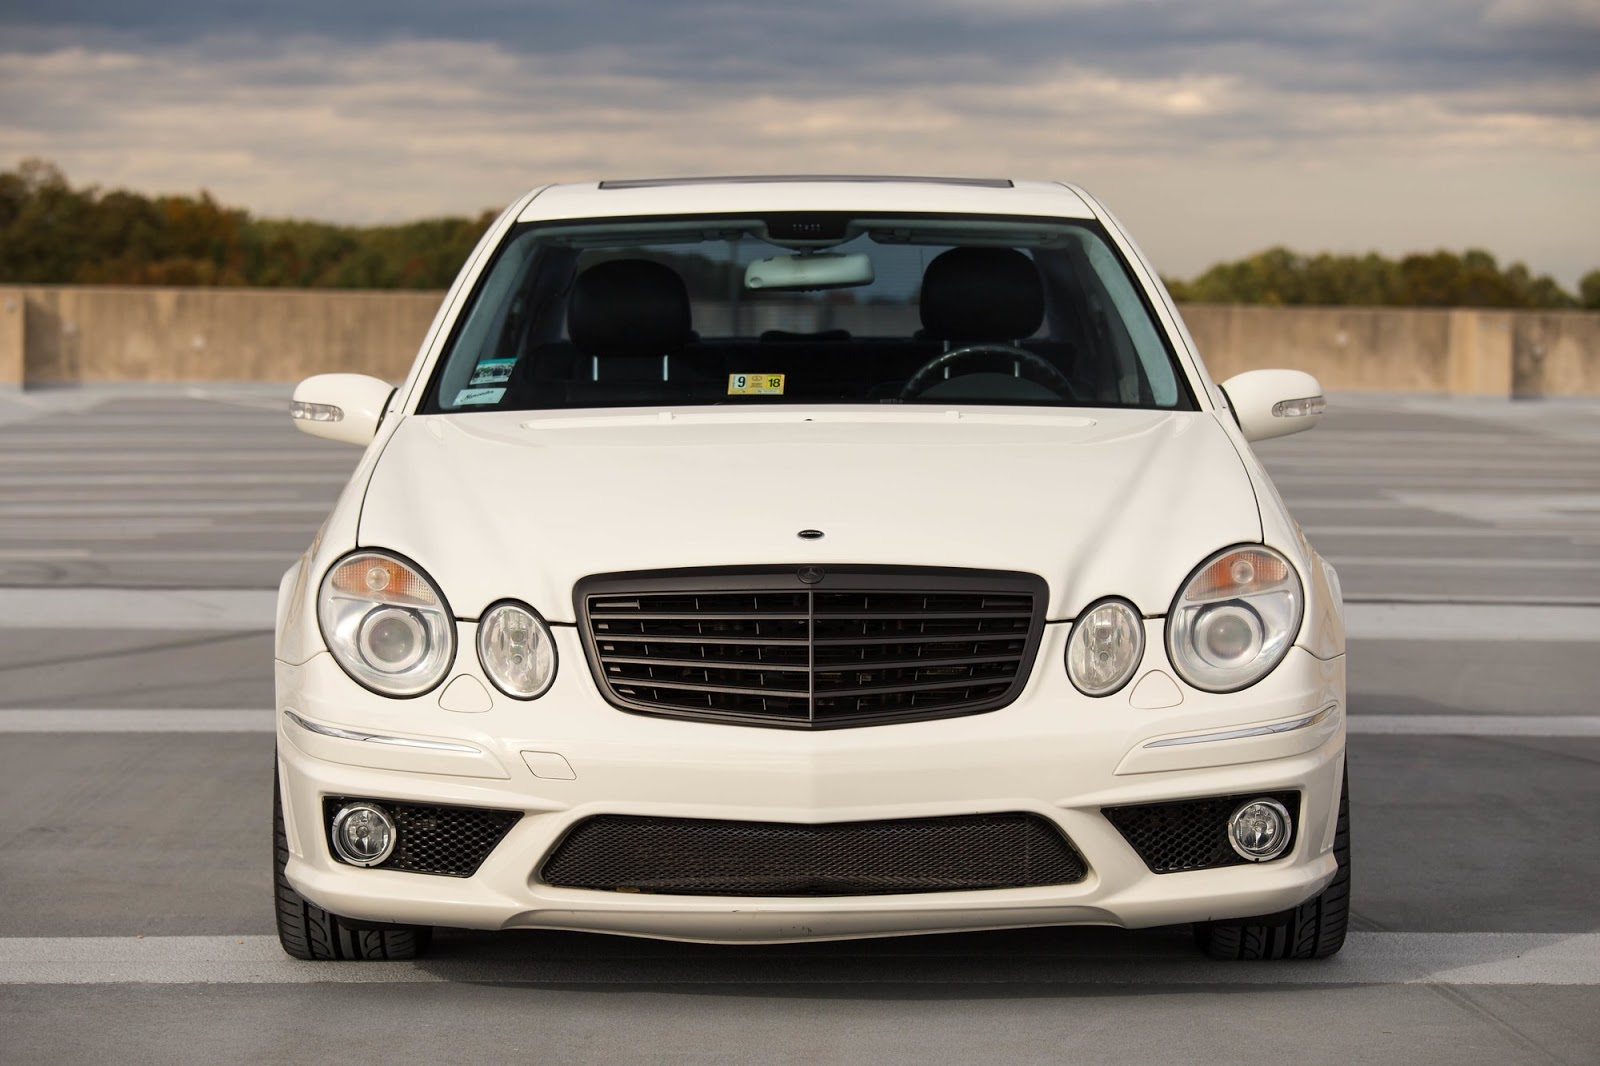 mercedes benz w211 e55 amg on r19 sport edition st6 wheels benztuning. Black Bedroom Furniture Sets. Home Design Ideas